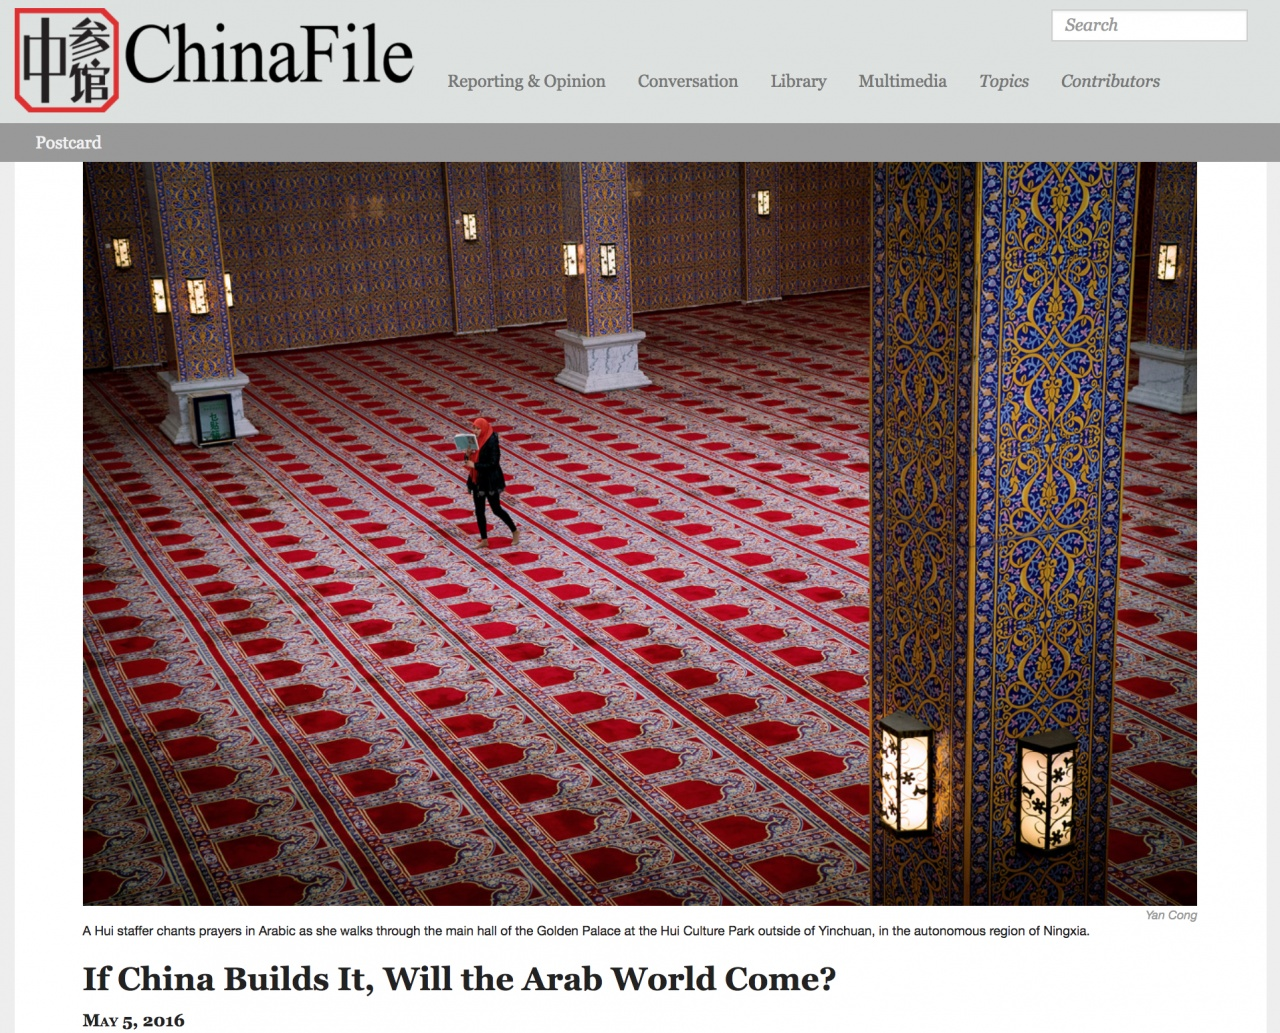 If China Builds It, Will the Arab World Come?